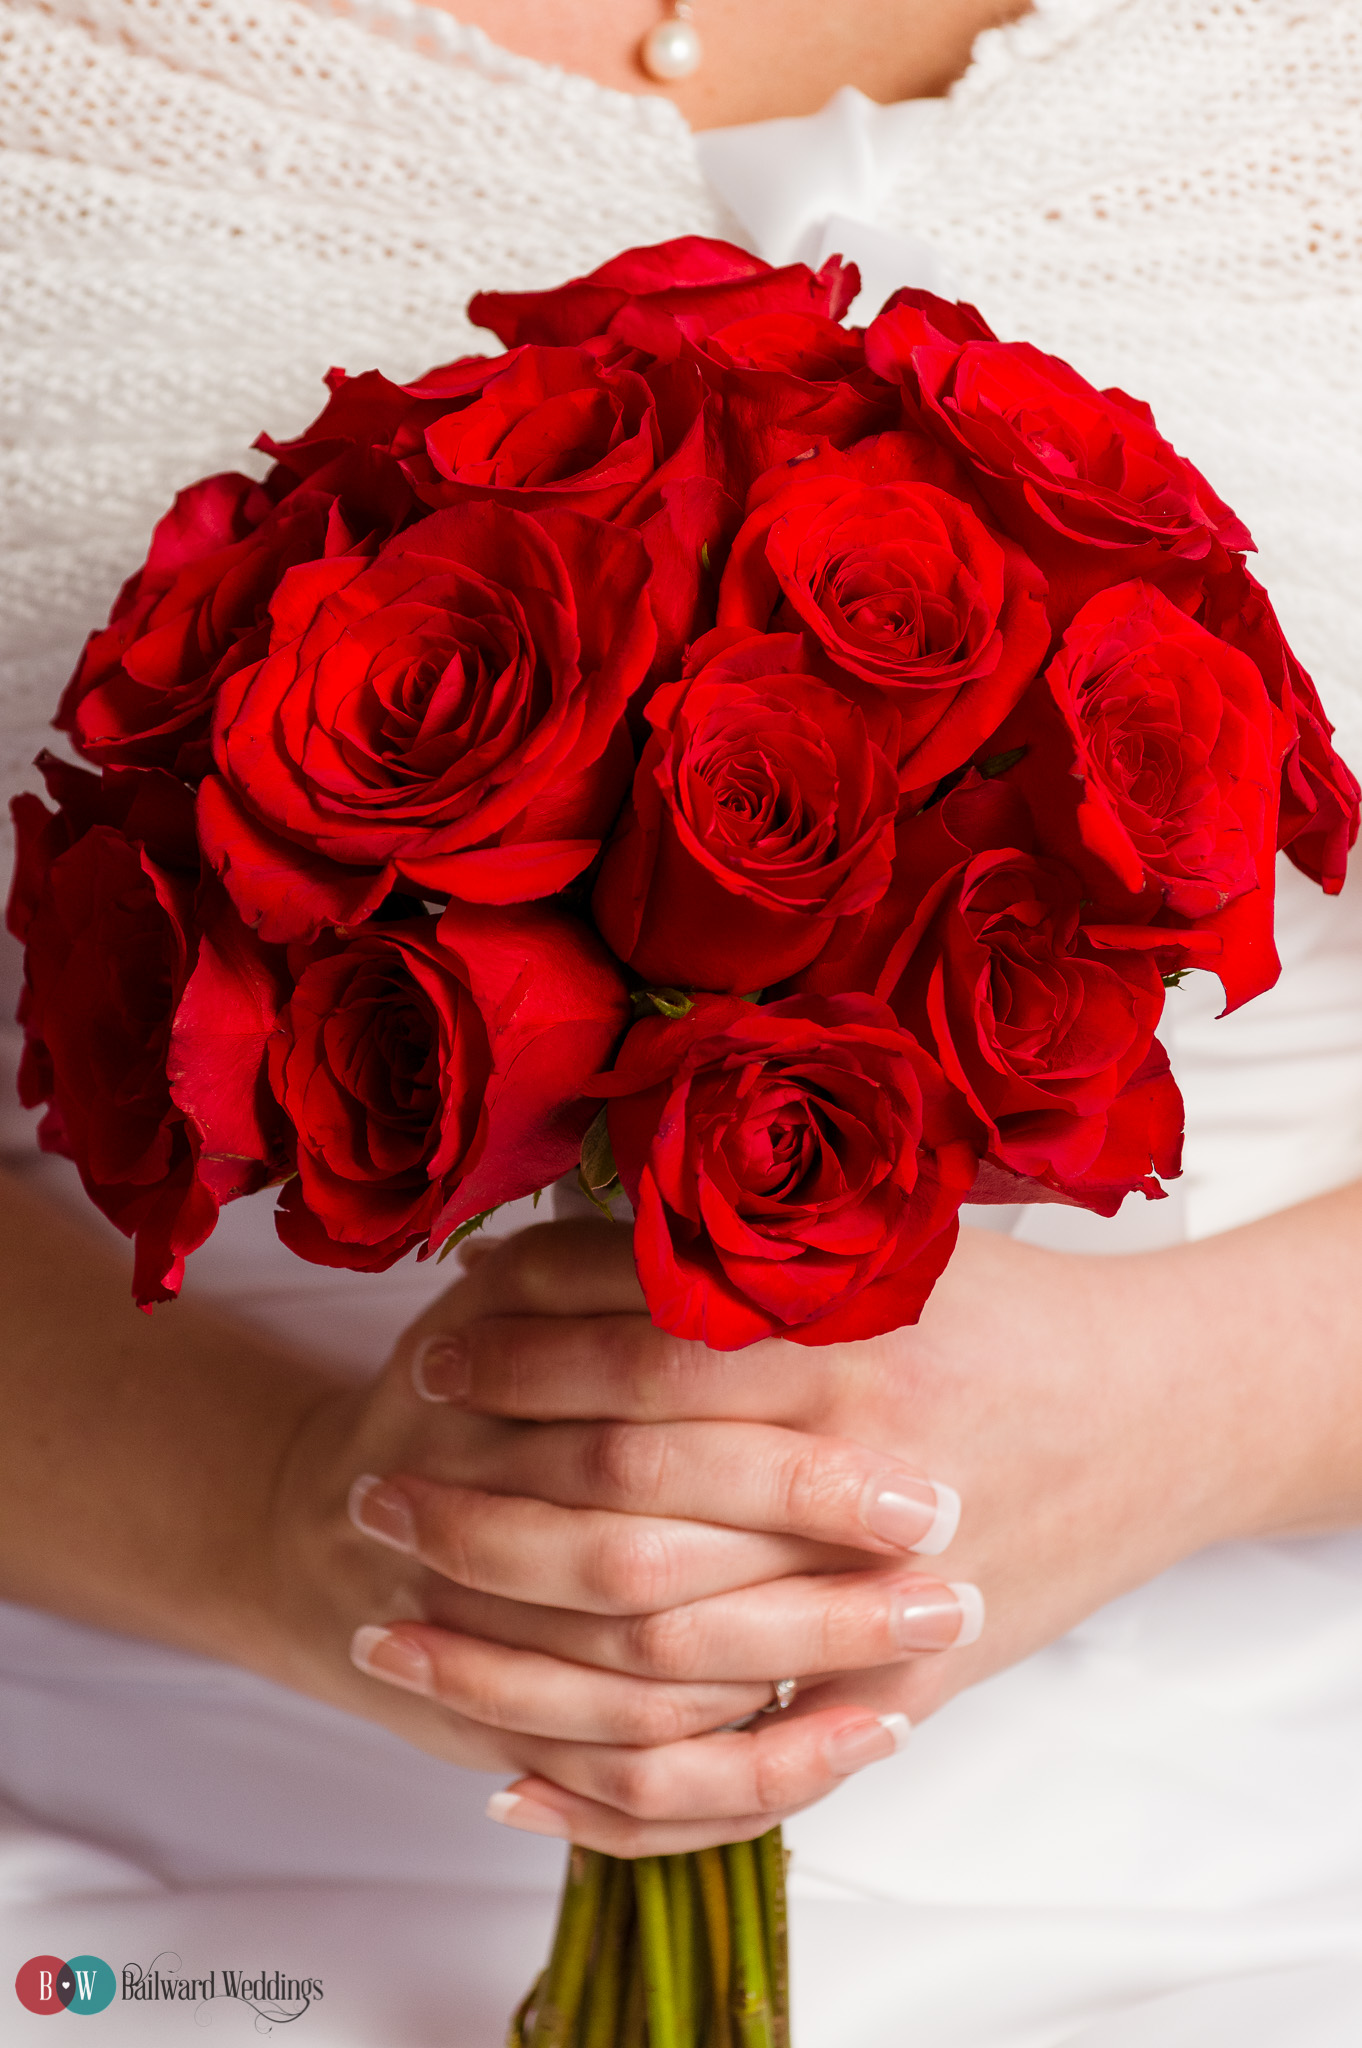 Bride holding red roses